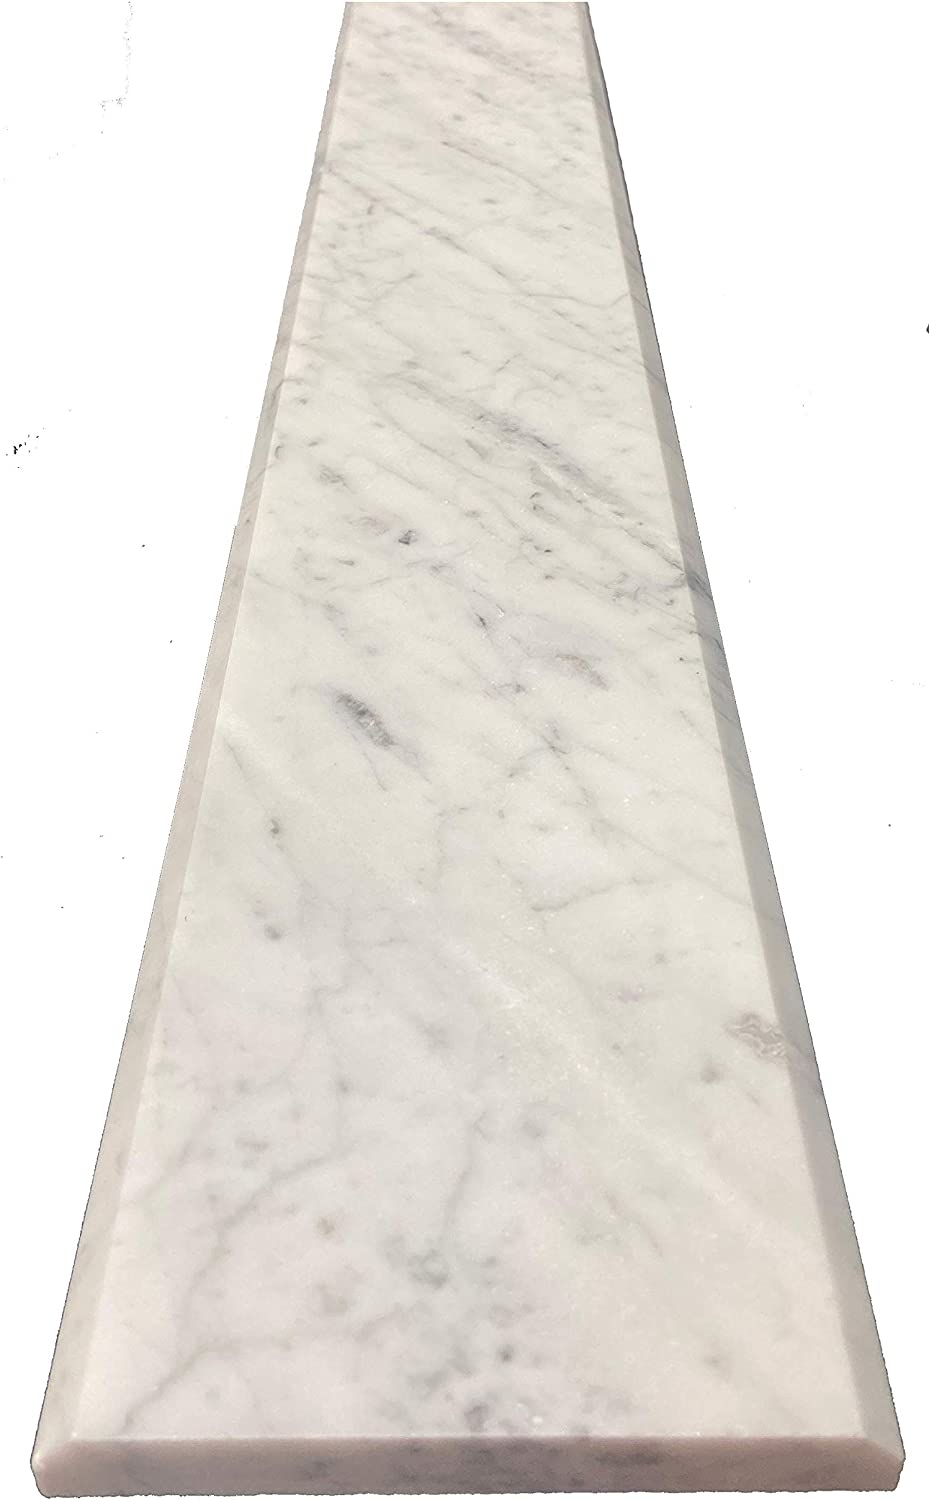 Carrara Marble Threshold Saddle - 36 70% OFF Outlet Polished 4 x Max 70% OFF